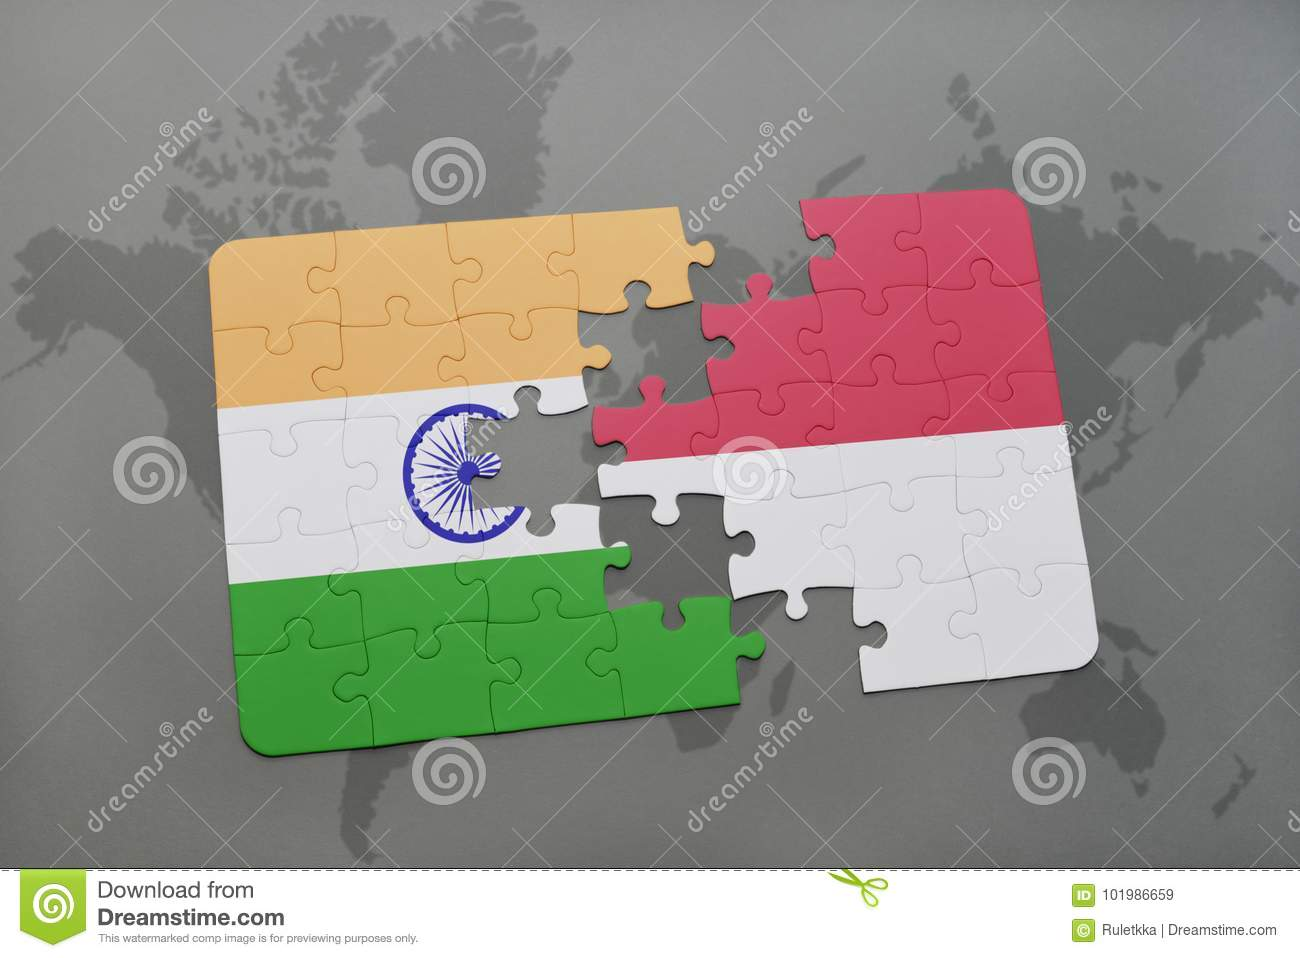 Puzzle with the national flag of india and indonesia on a world map download puzzle with the national flag of india and indonesia on a world map background gumiabroncs Choice Image